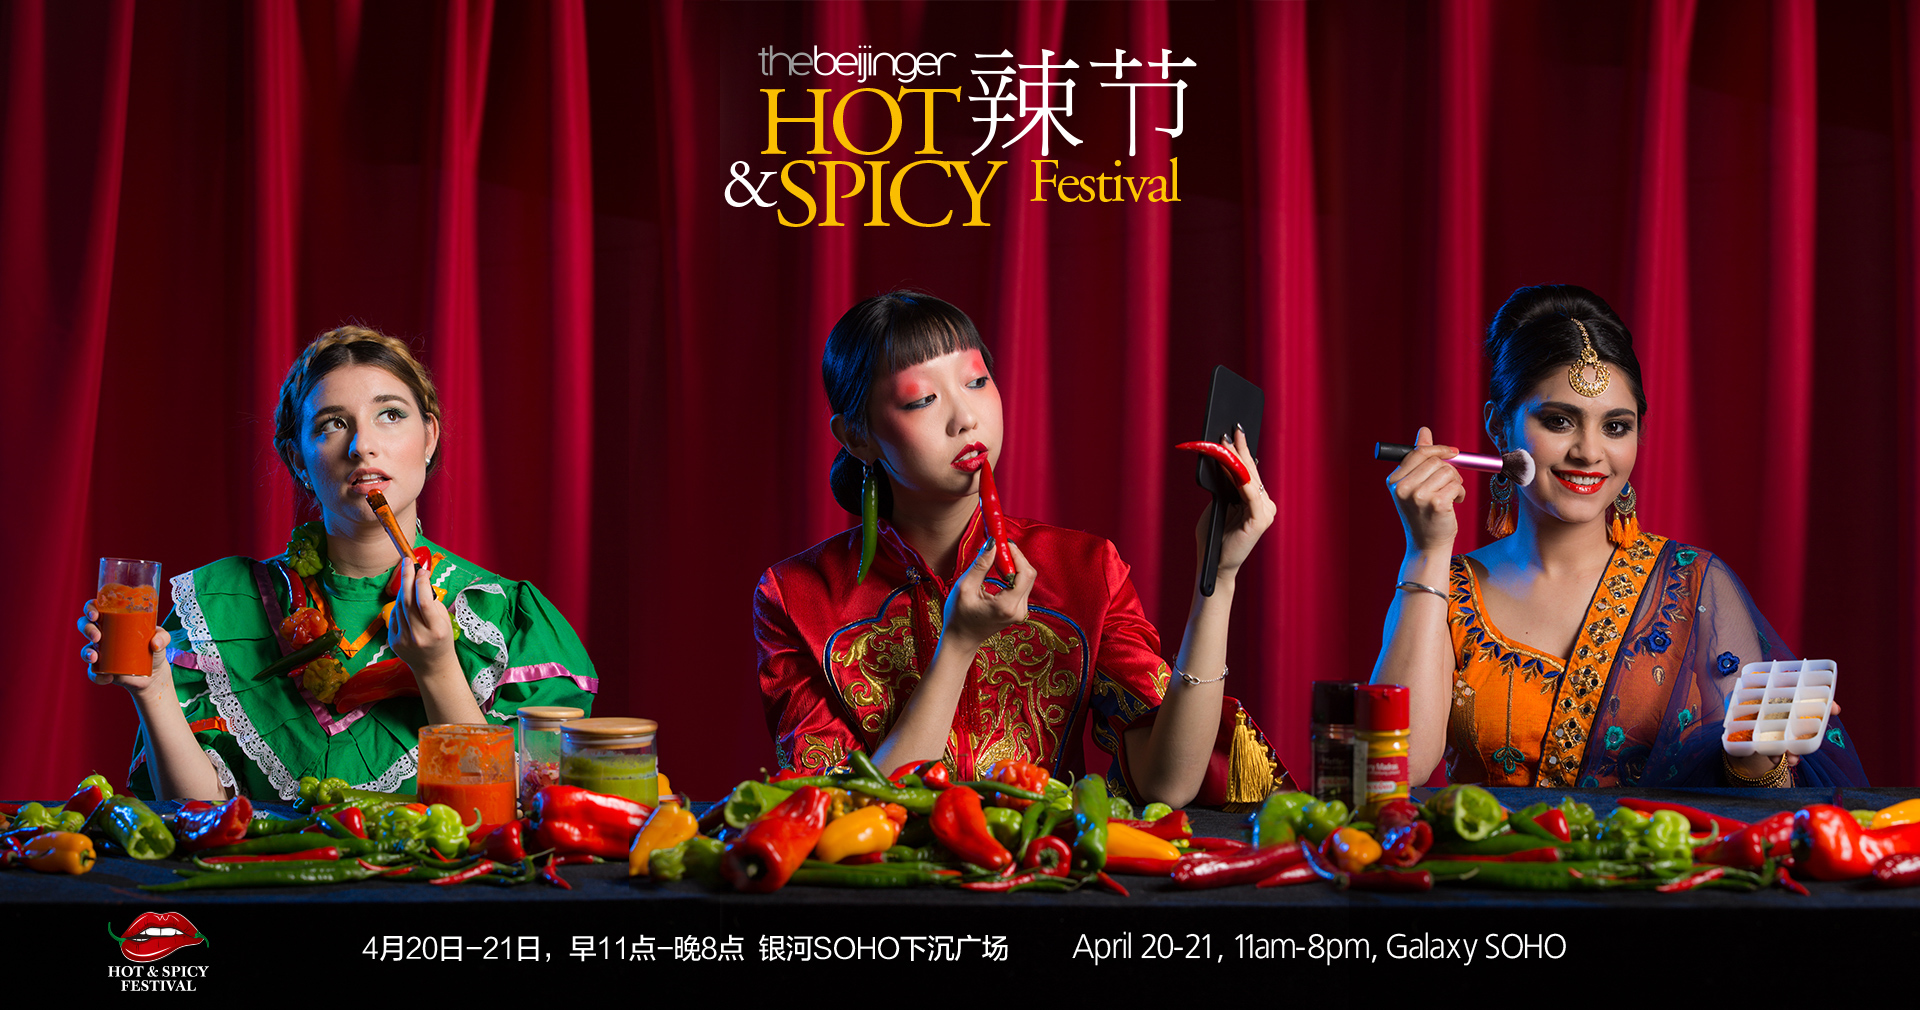 2019 Hot & Spicy Festival